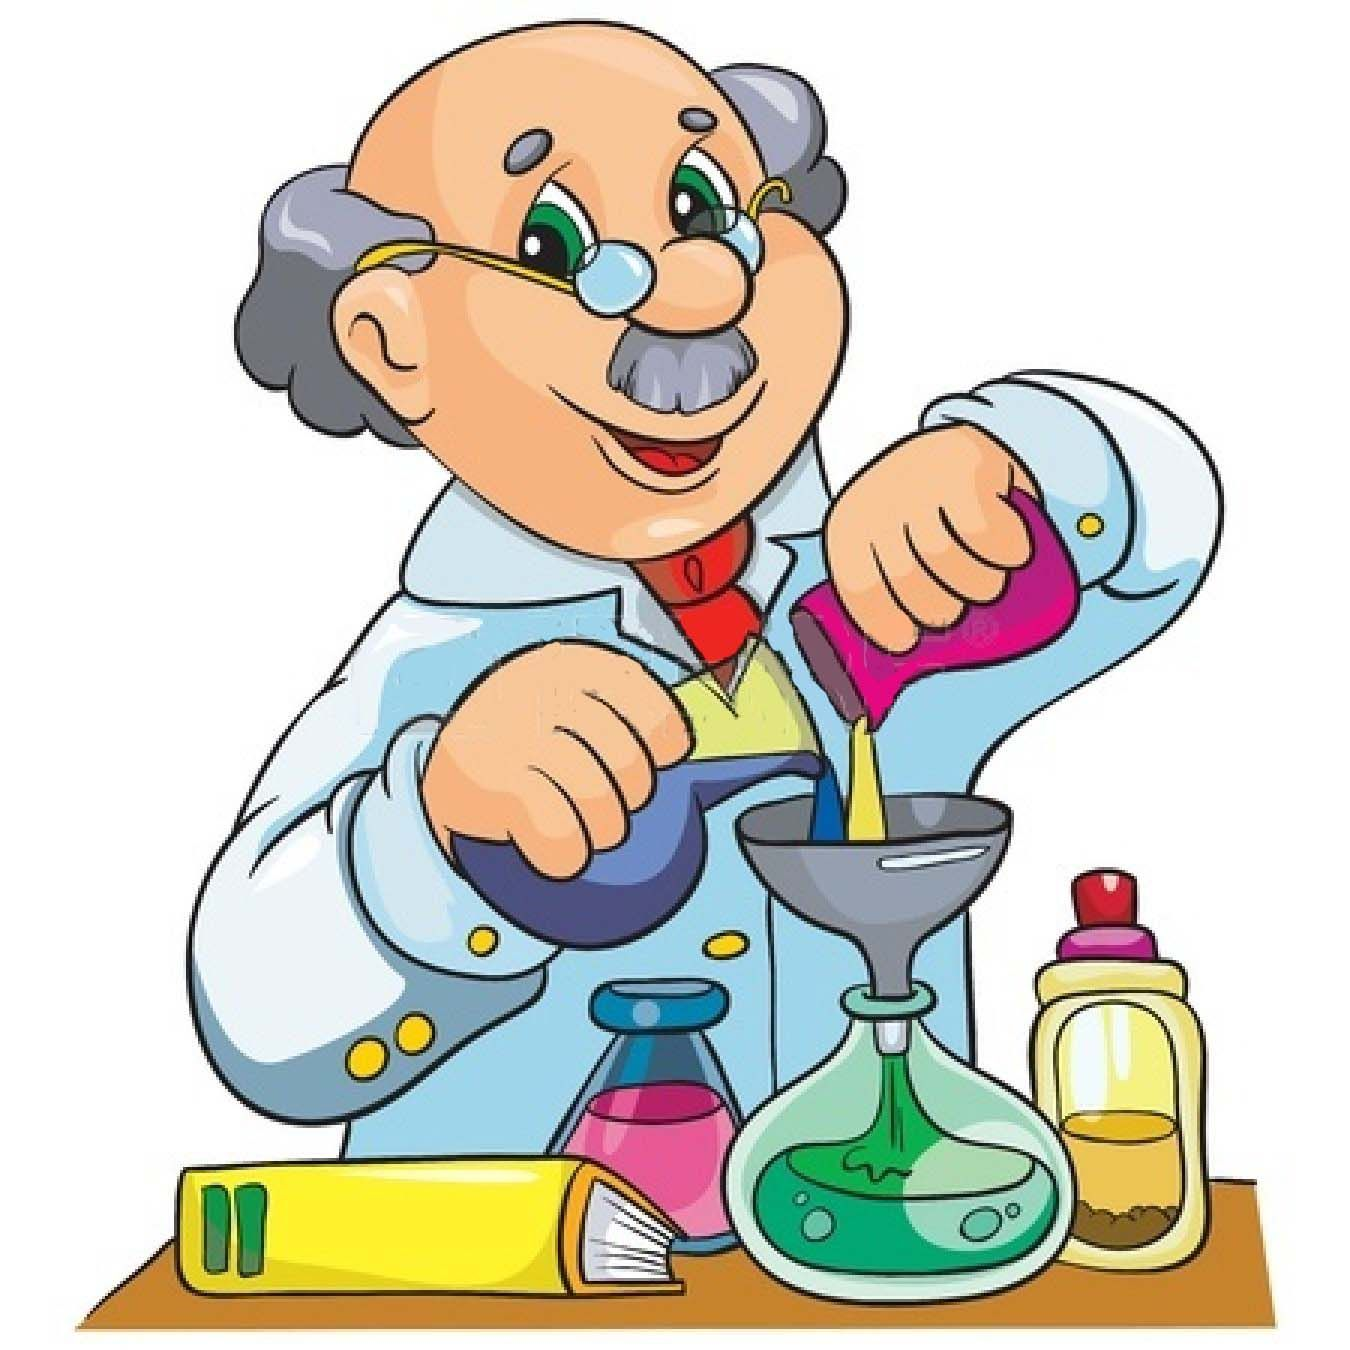 cartoon scientist chemistry professor science clipart laboratory character royalty mad vector illustrations drawing hand